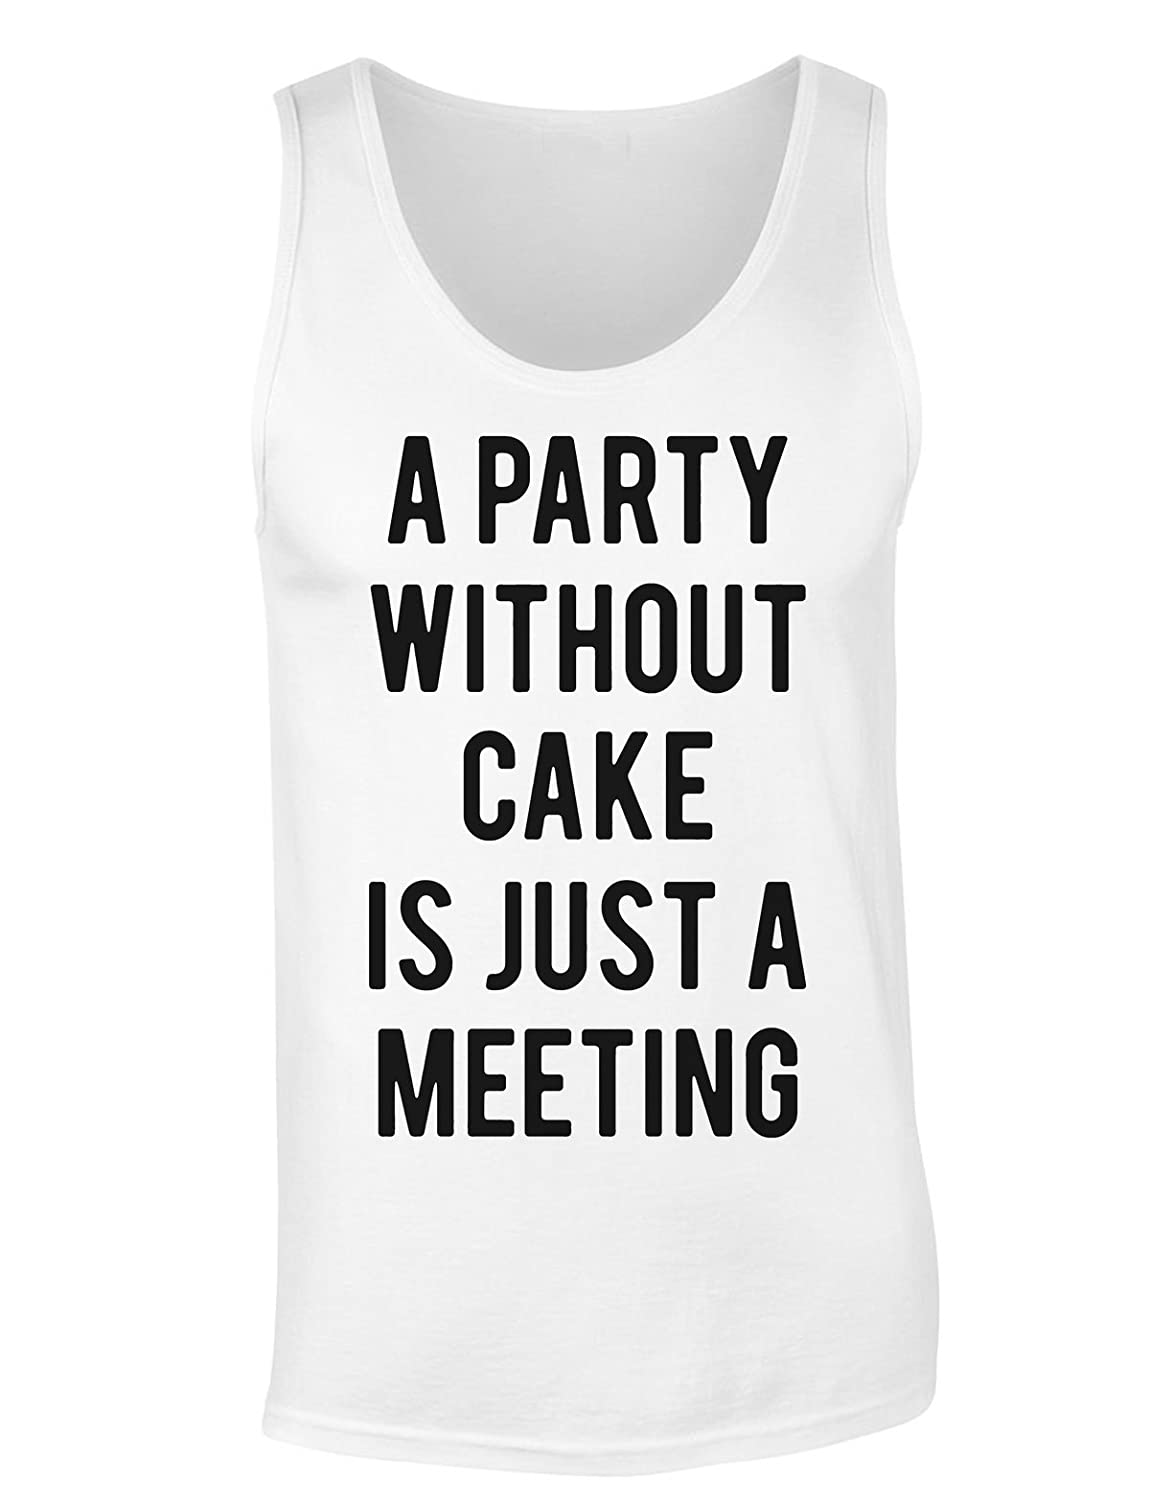 A Party Without Cake Is Just A Meeting Women's Tank Top Shirt Extra Large